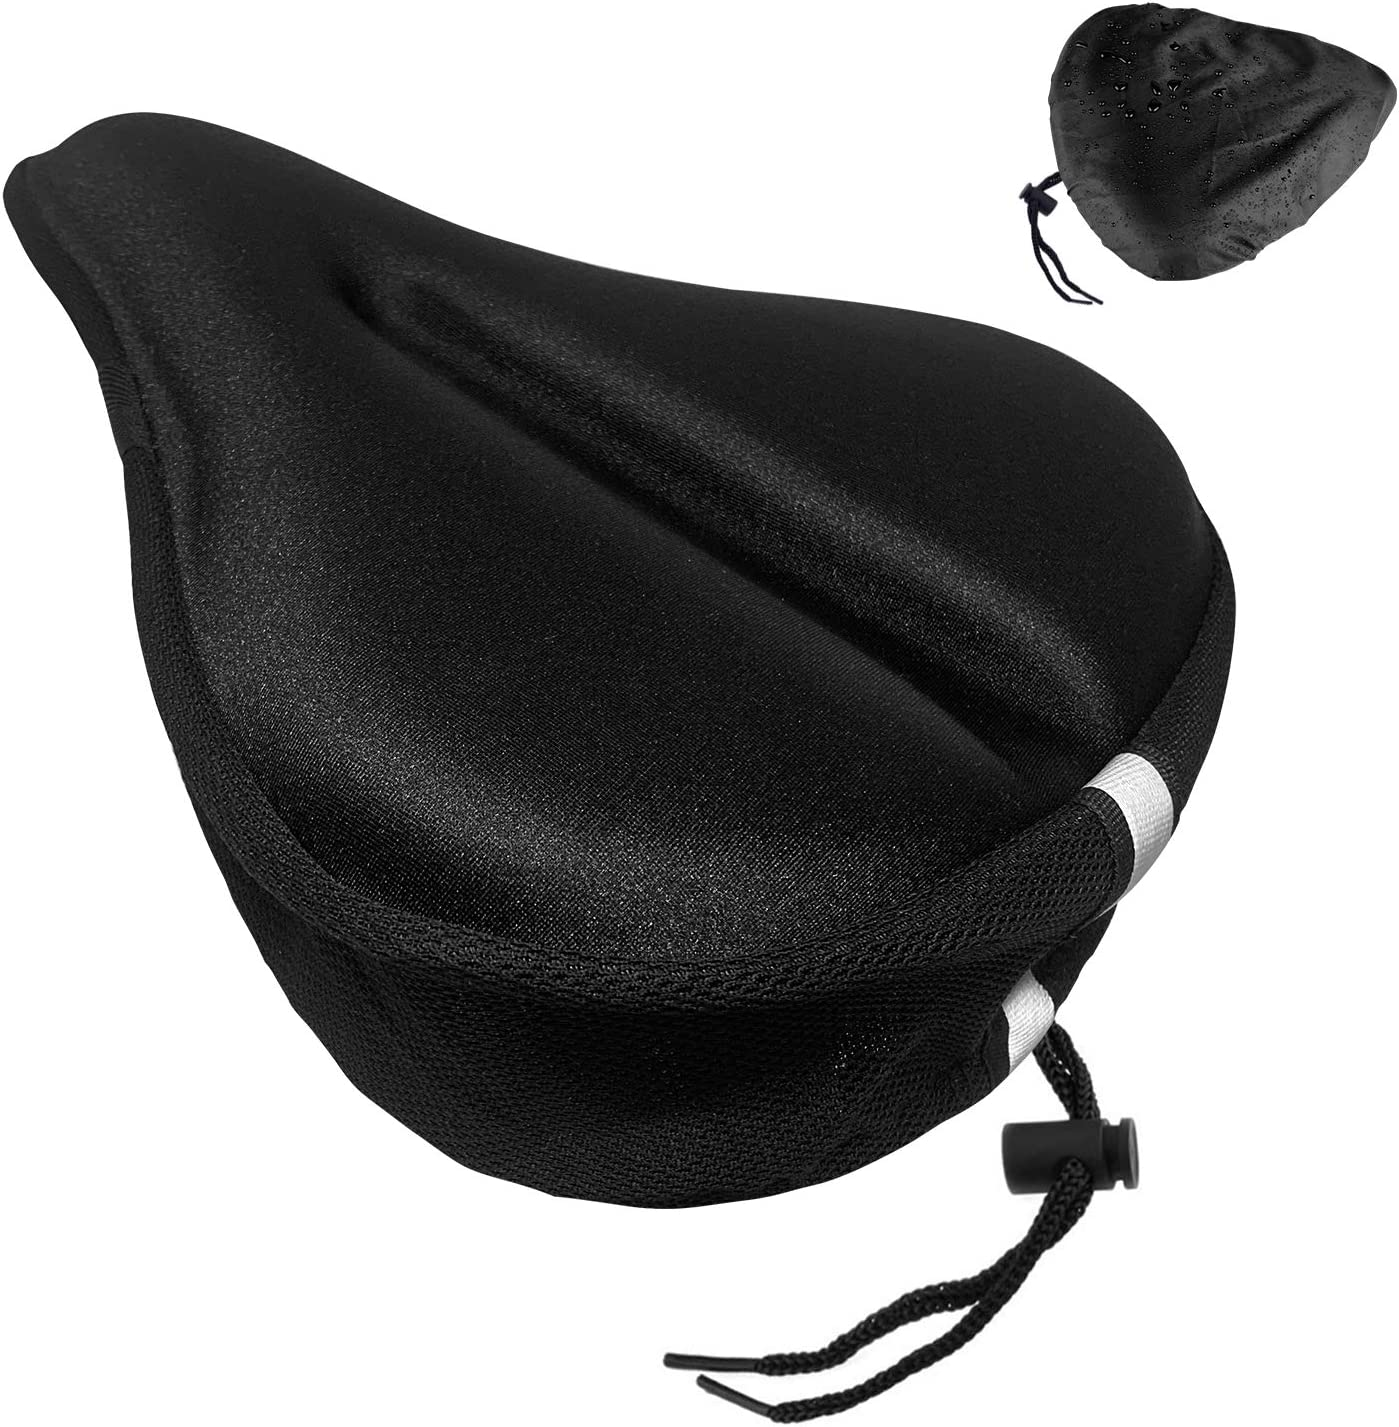 ZEJUN Gel Bike Seat Cover Indoor Cycling Bike Seat Covers Fits Cruiser Mountain Road Stationary Bikes Extra Soft Silicone Bicycle Saddle Pad Comfort Wide Bike Seat Cushion Cover for Women Men